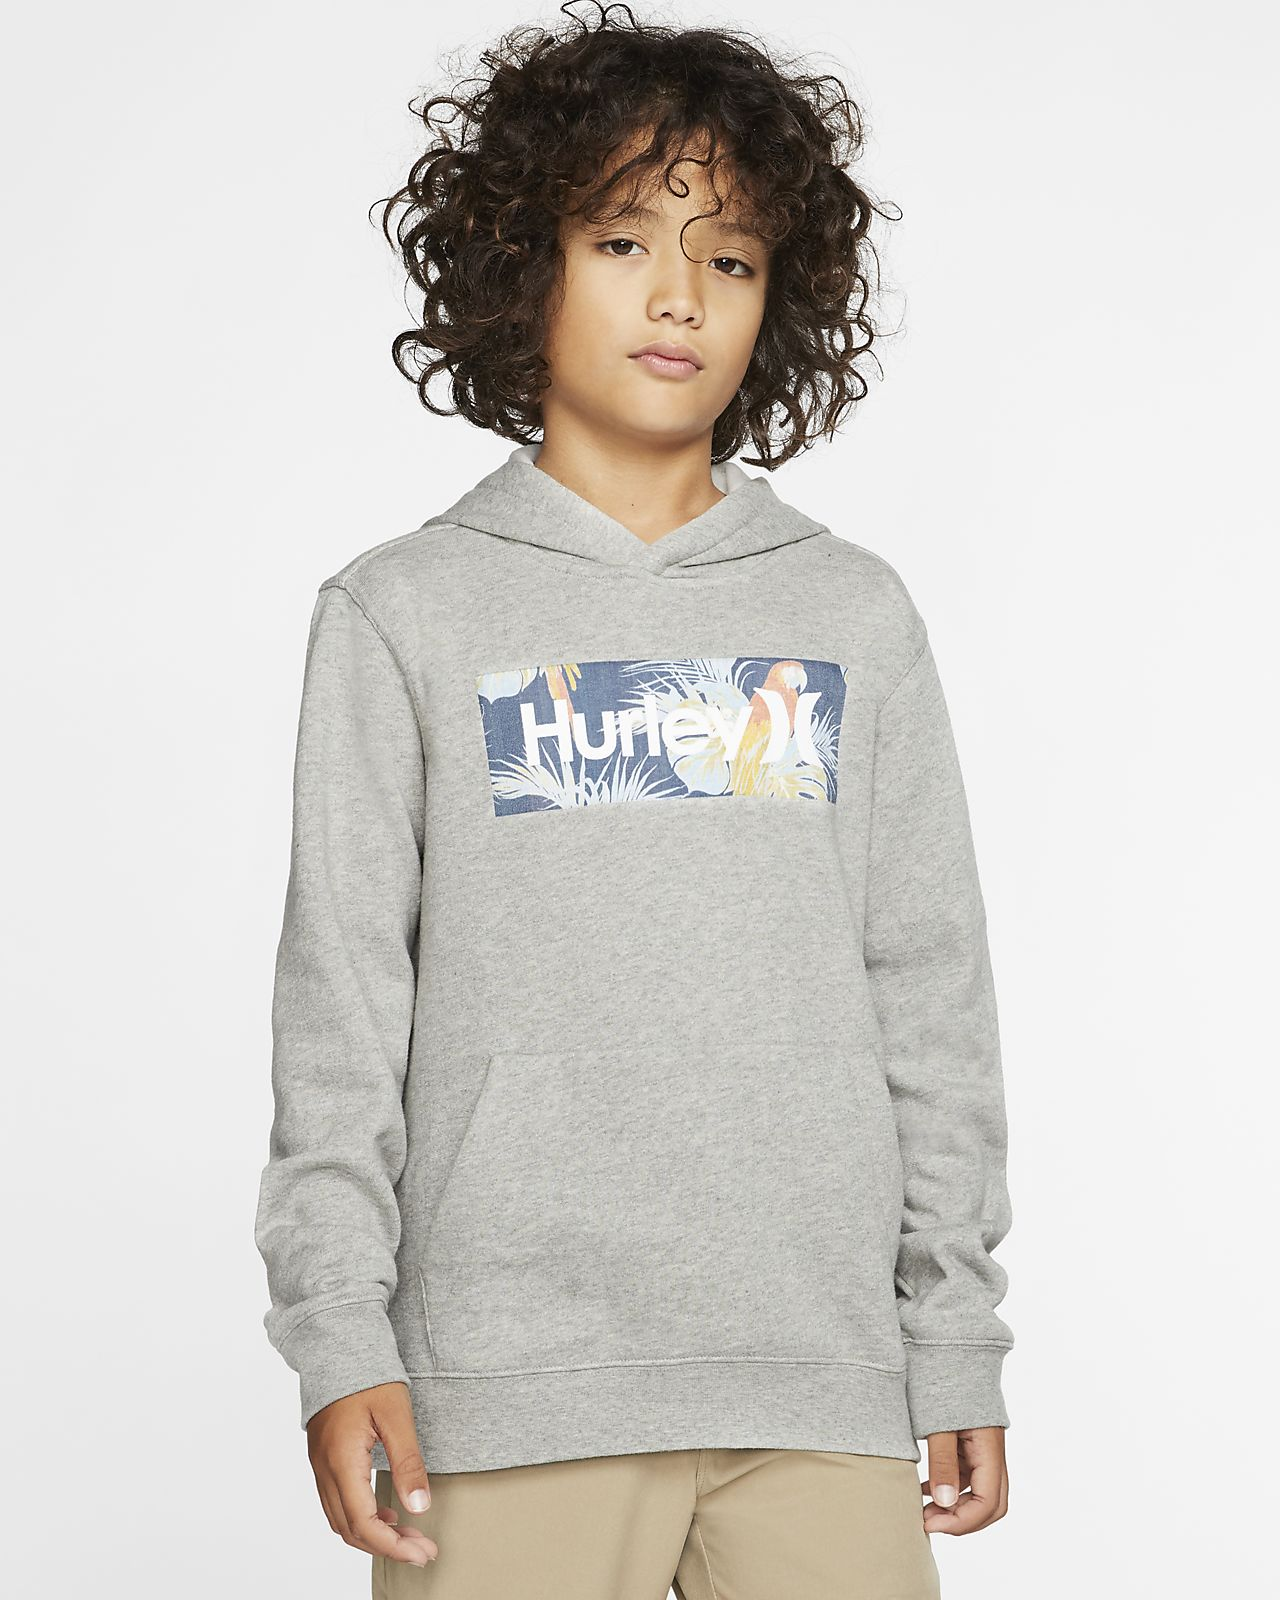 Hurley One And Only Boxed Sierra-pullover i fleece til drenge